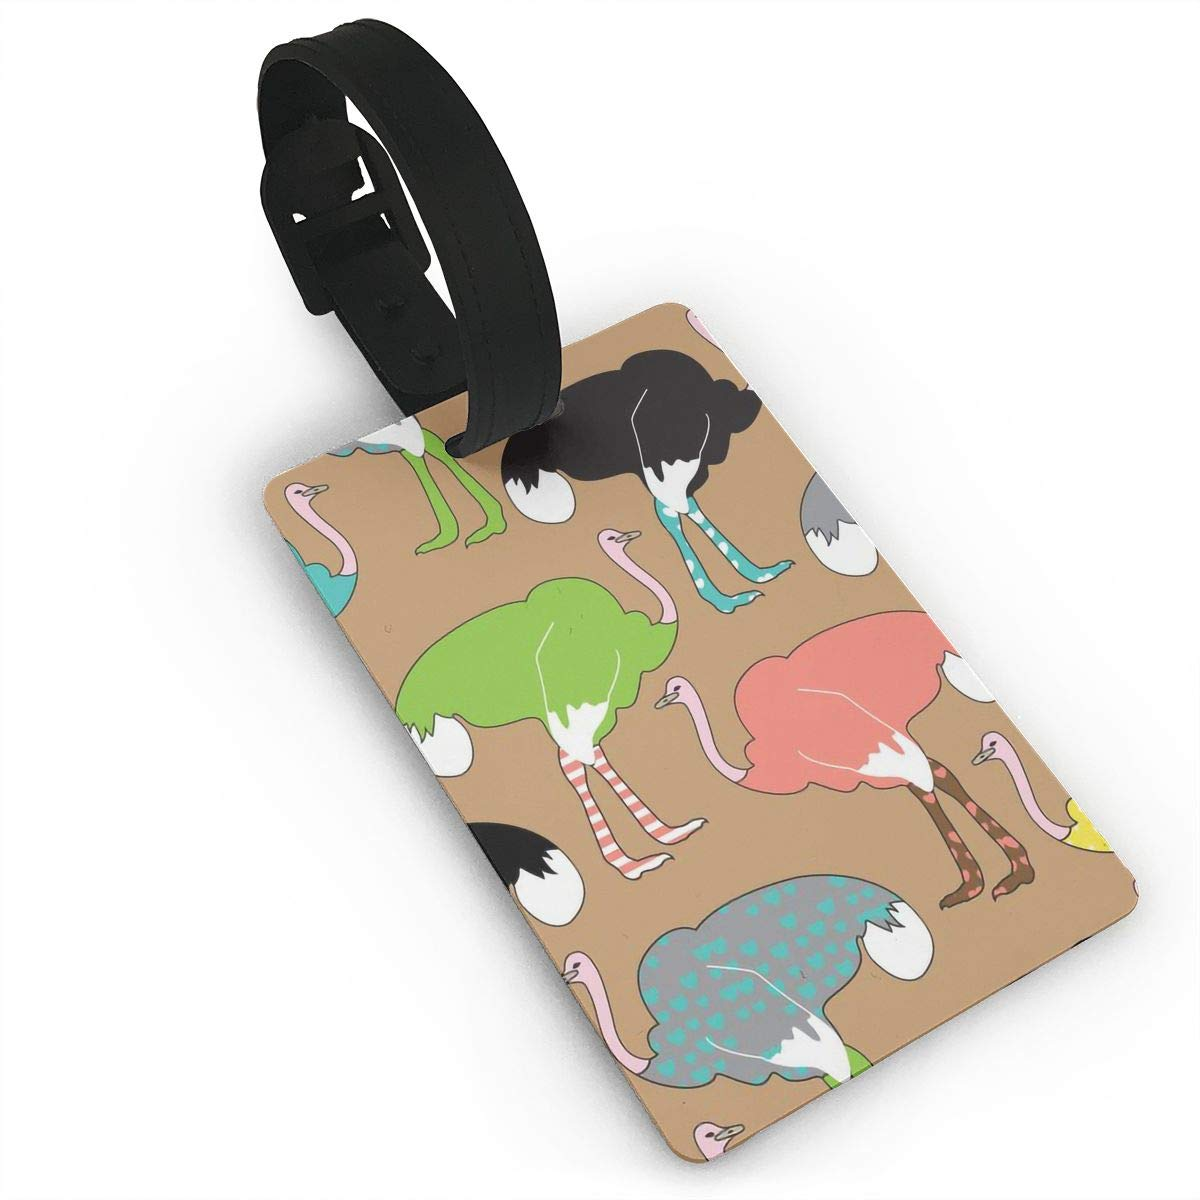 Ostrich Baggage Tag For Suitcase Bag Accessories 2 Pack Luggage Tags